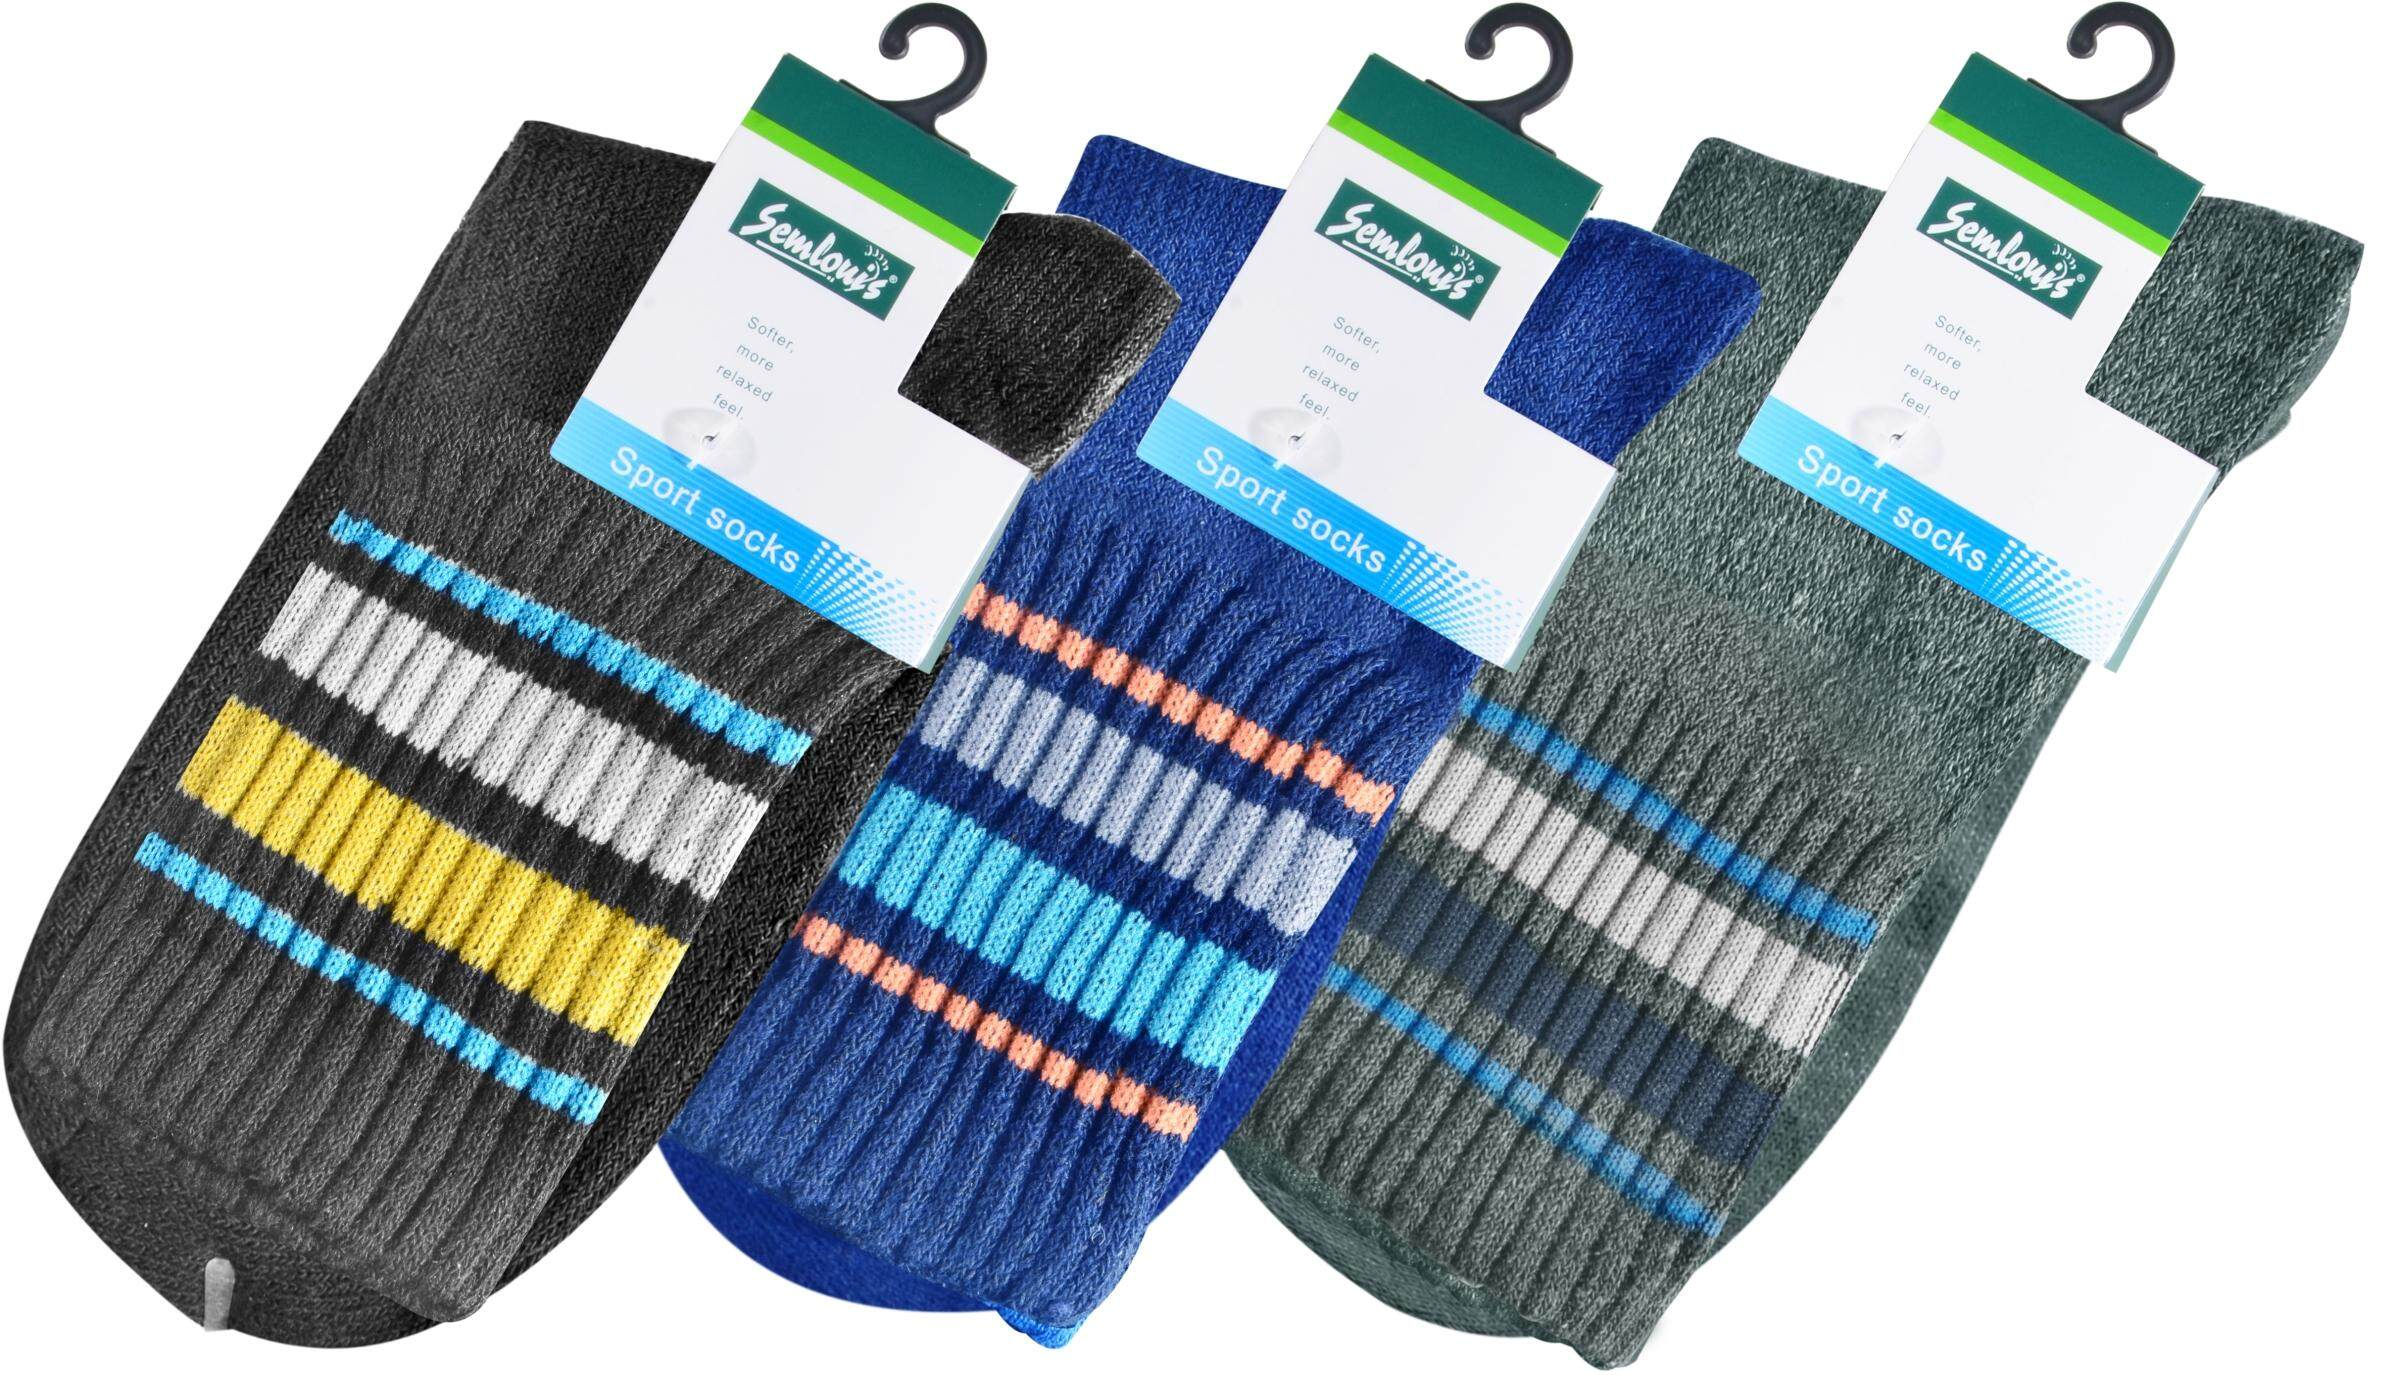 Semlouis Sport Quarter Crew Cushion Socks - Basic Design with Lines / PAIR